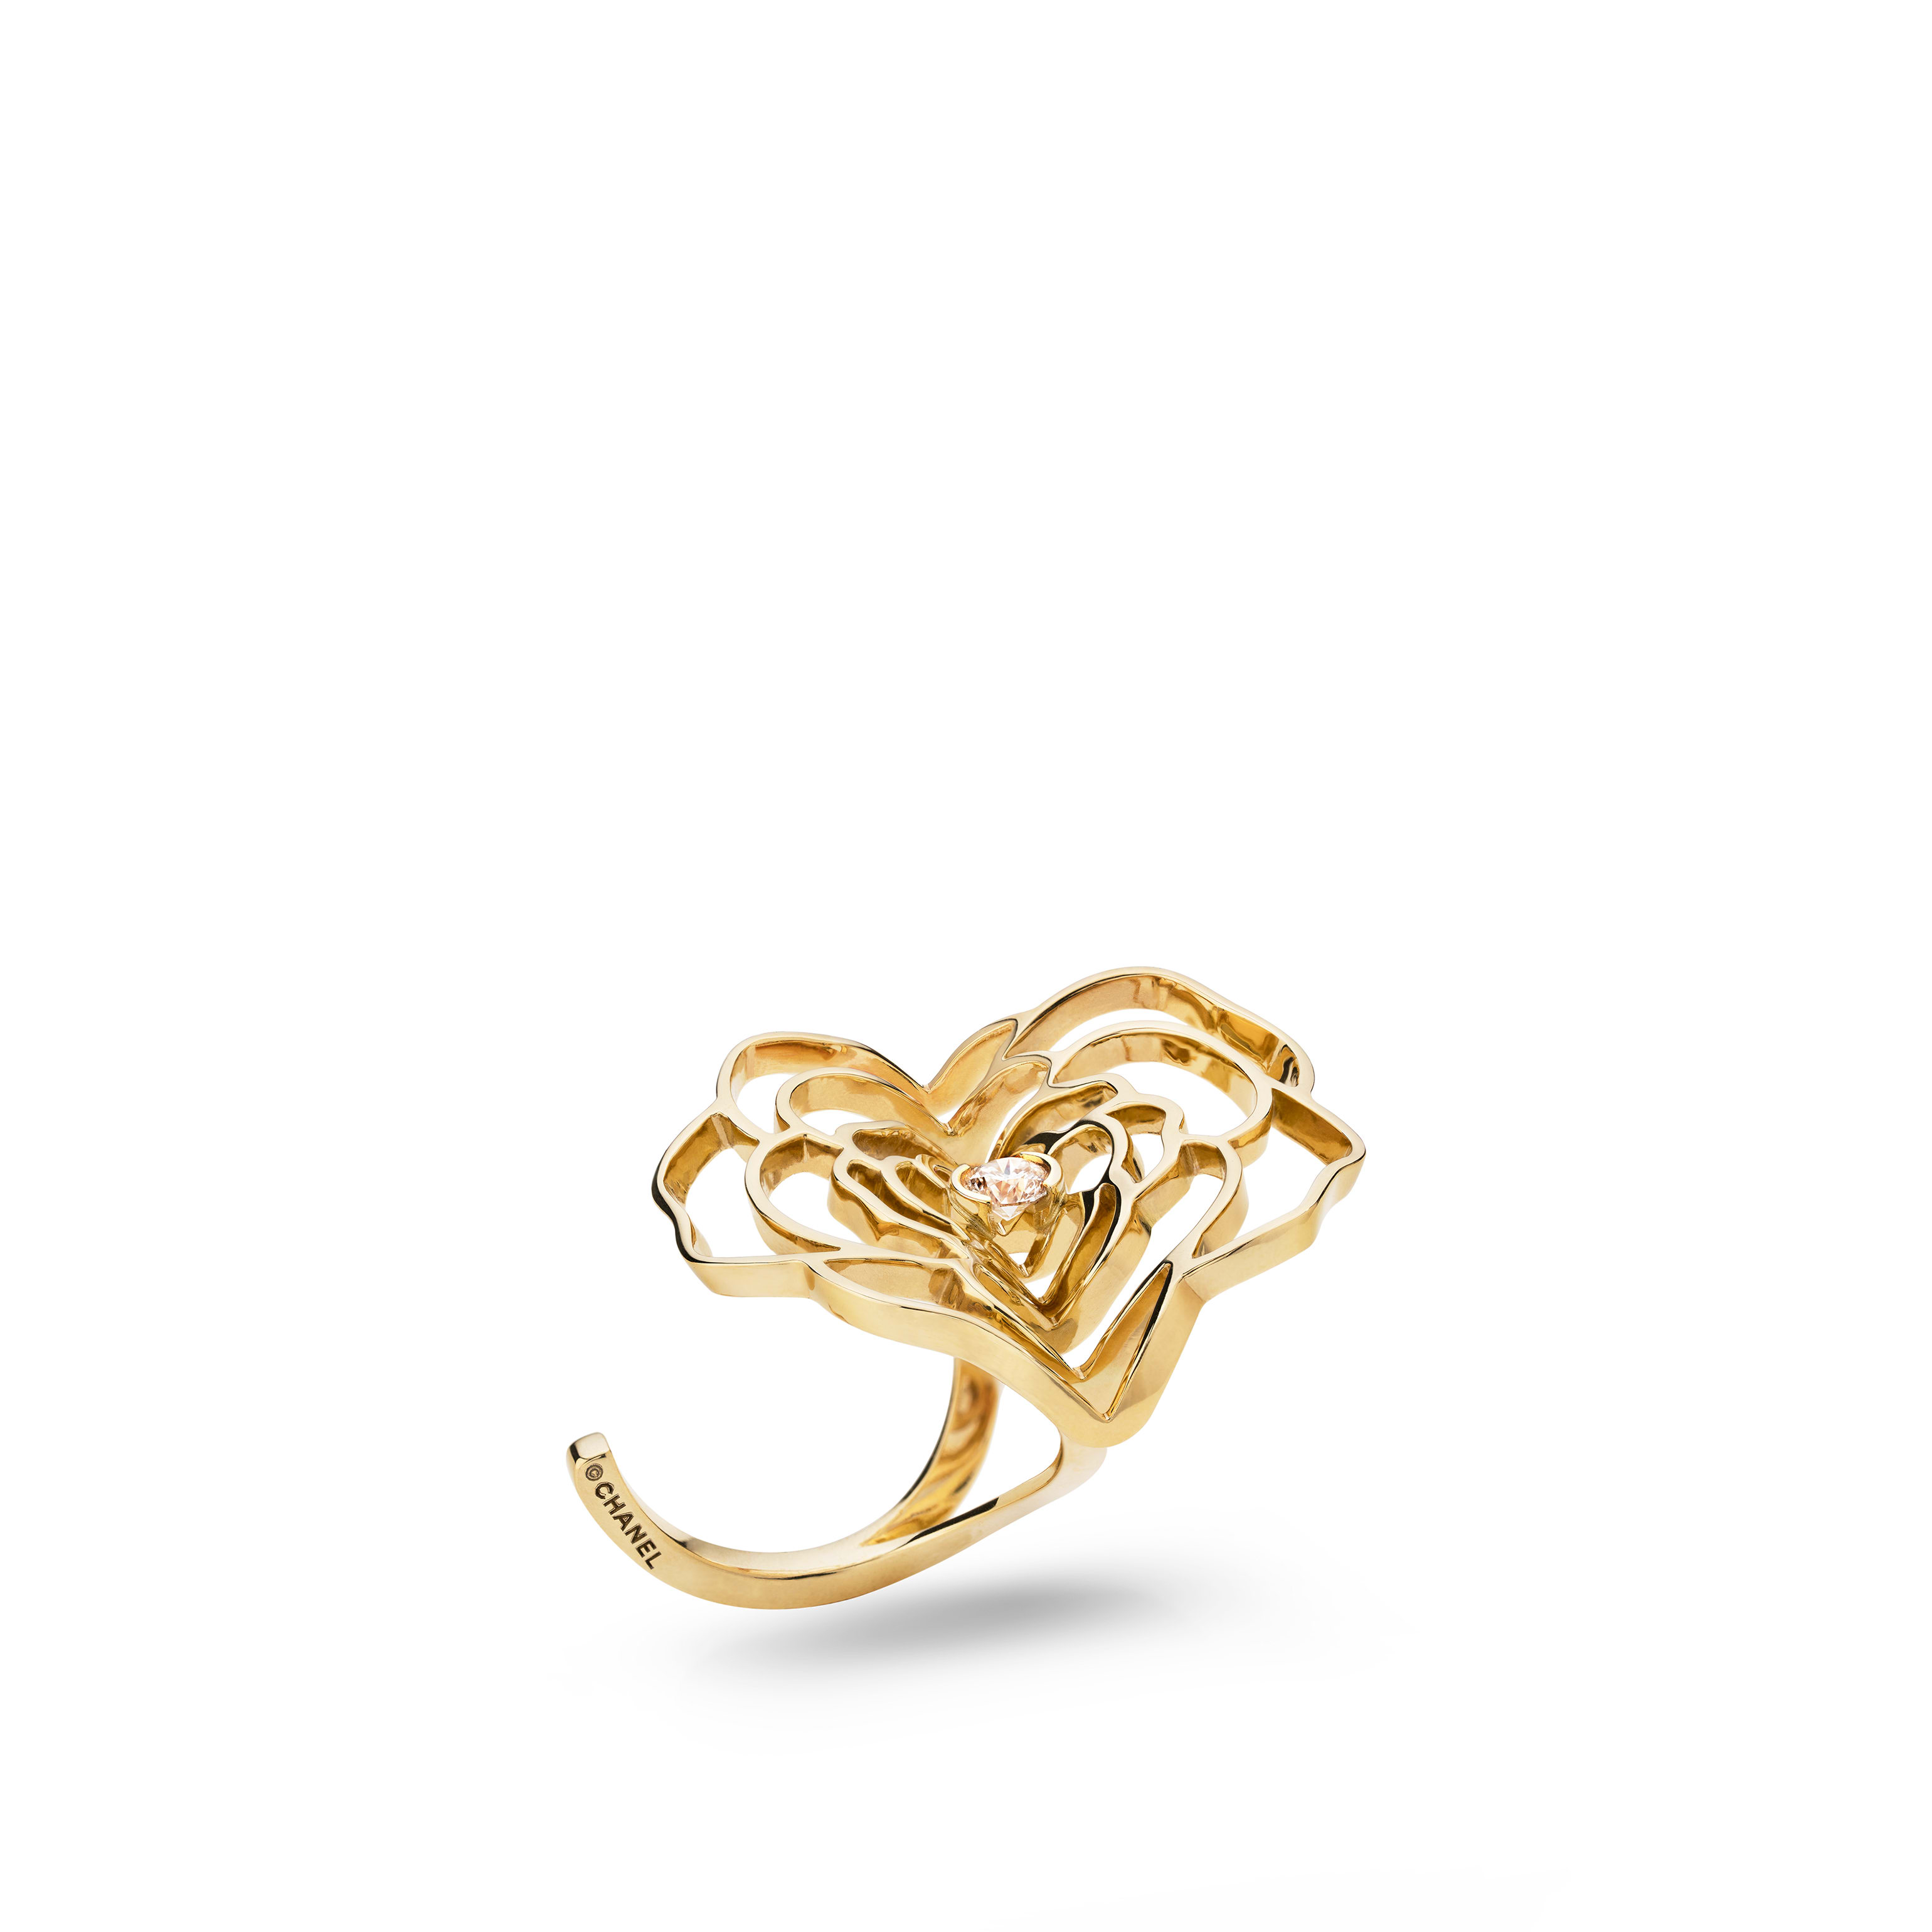 Pétales de Camélia ring - 18K yellow gold, diamond - CHANEL - Default view - see standard sized version